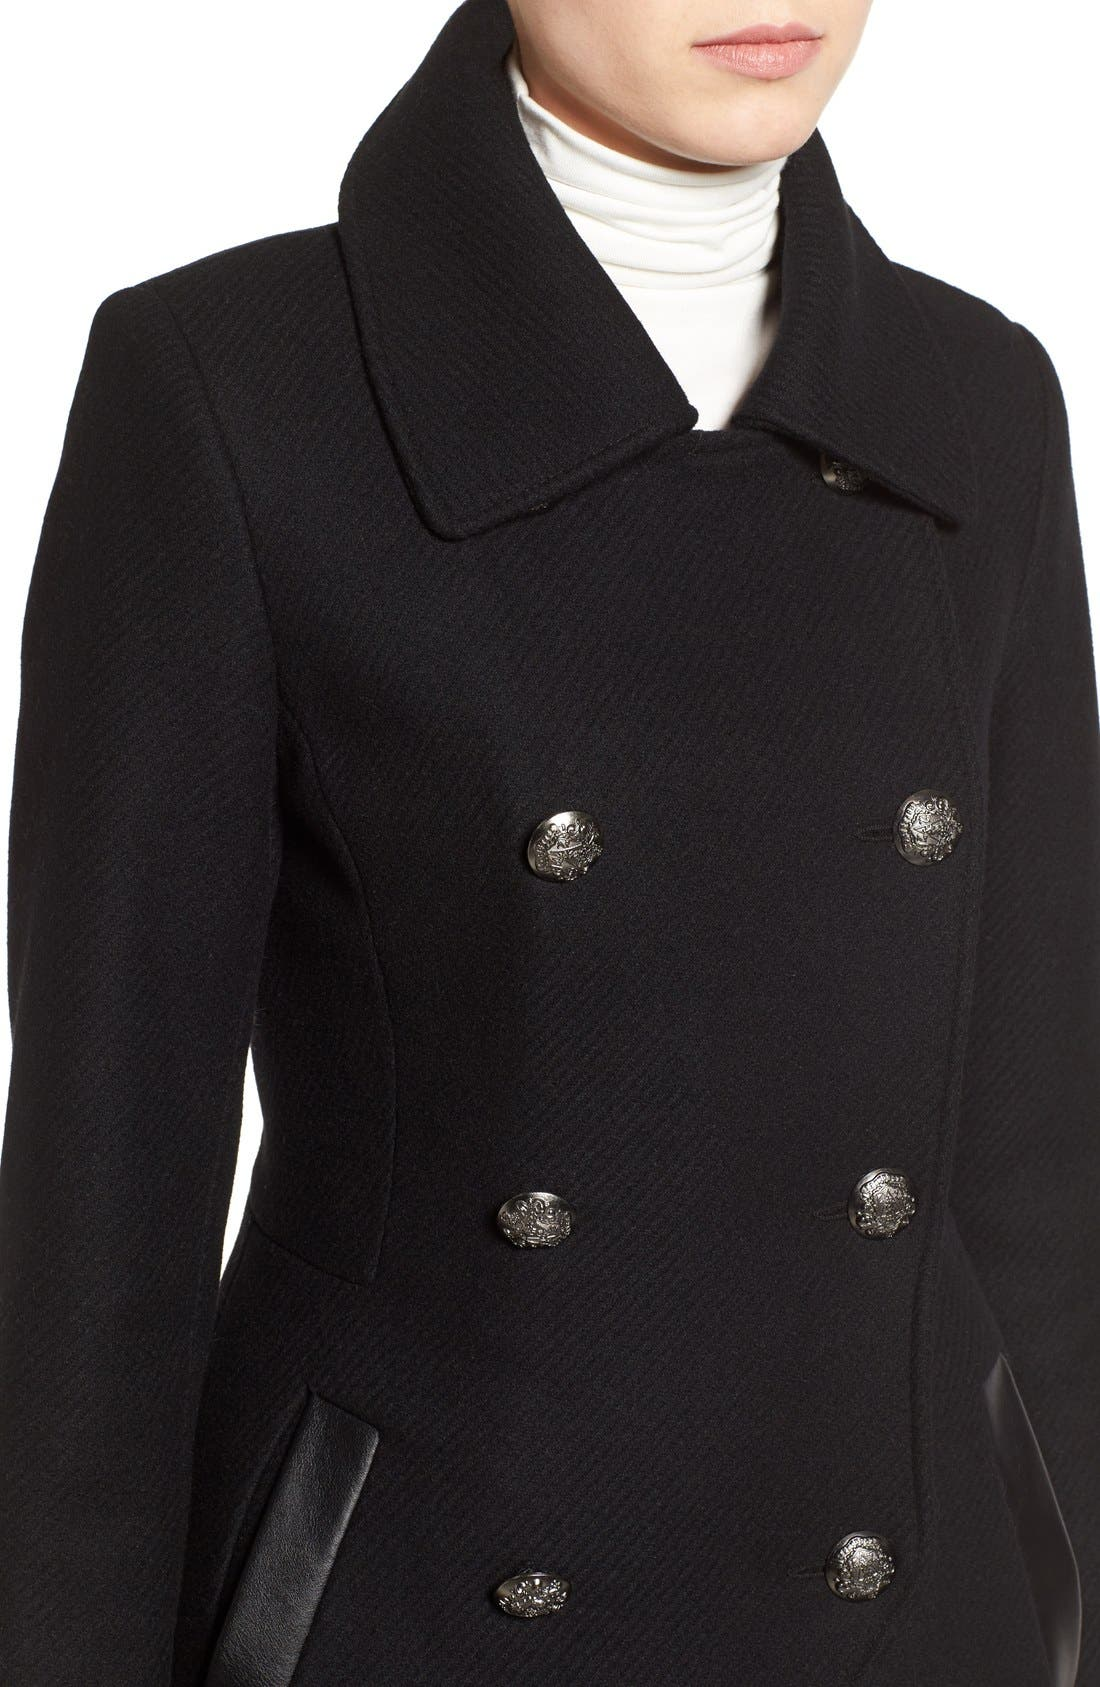 Wool Blend Military Coat,                             Alternate thumbnail 5, color,